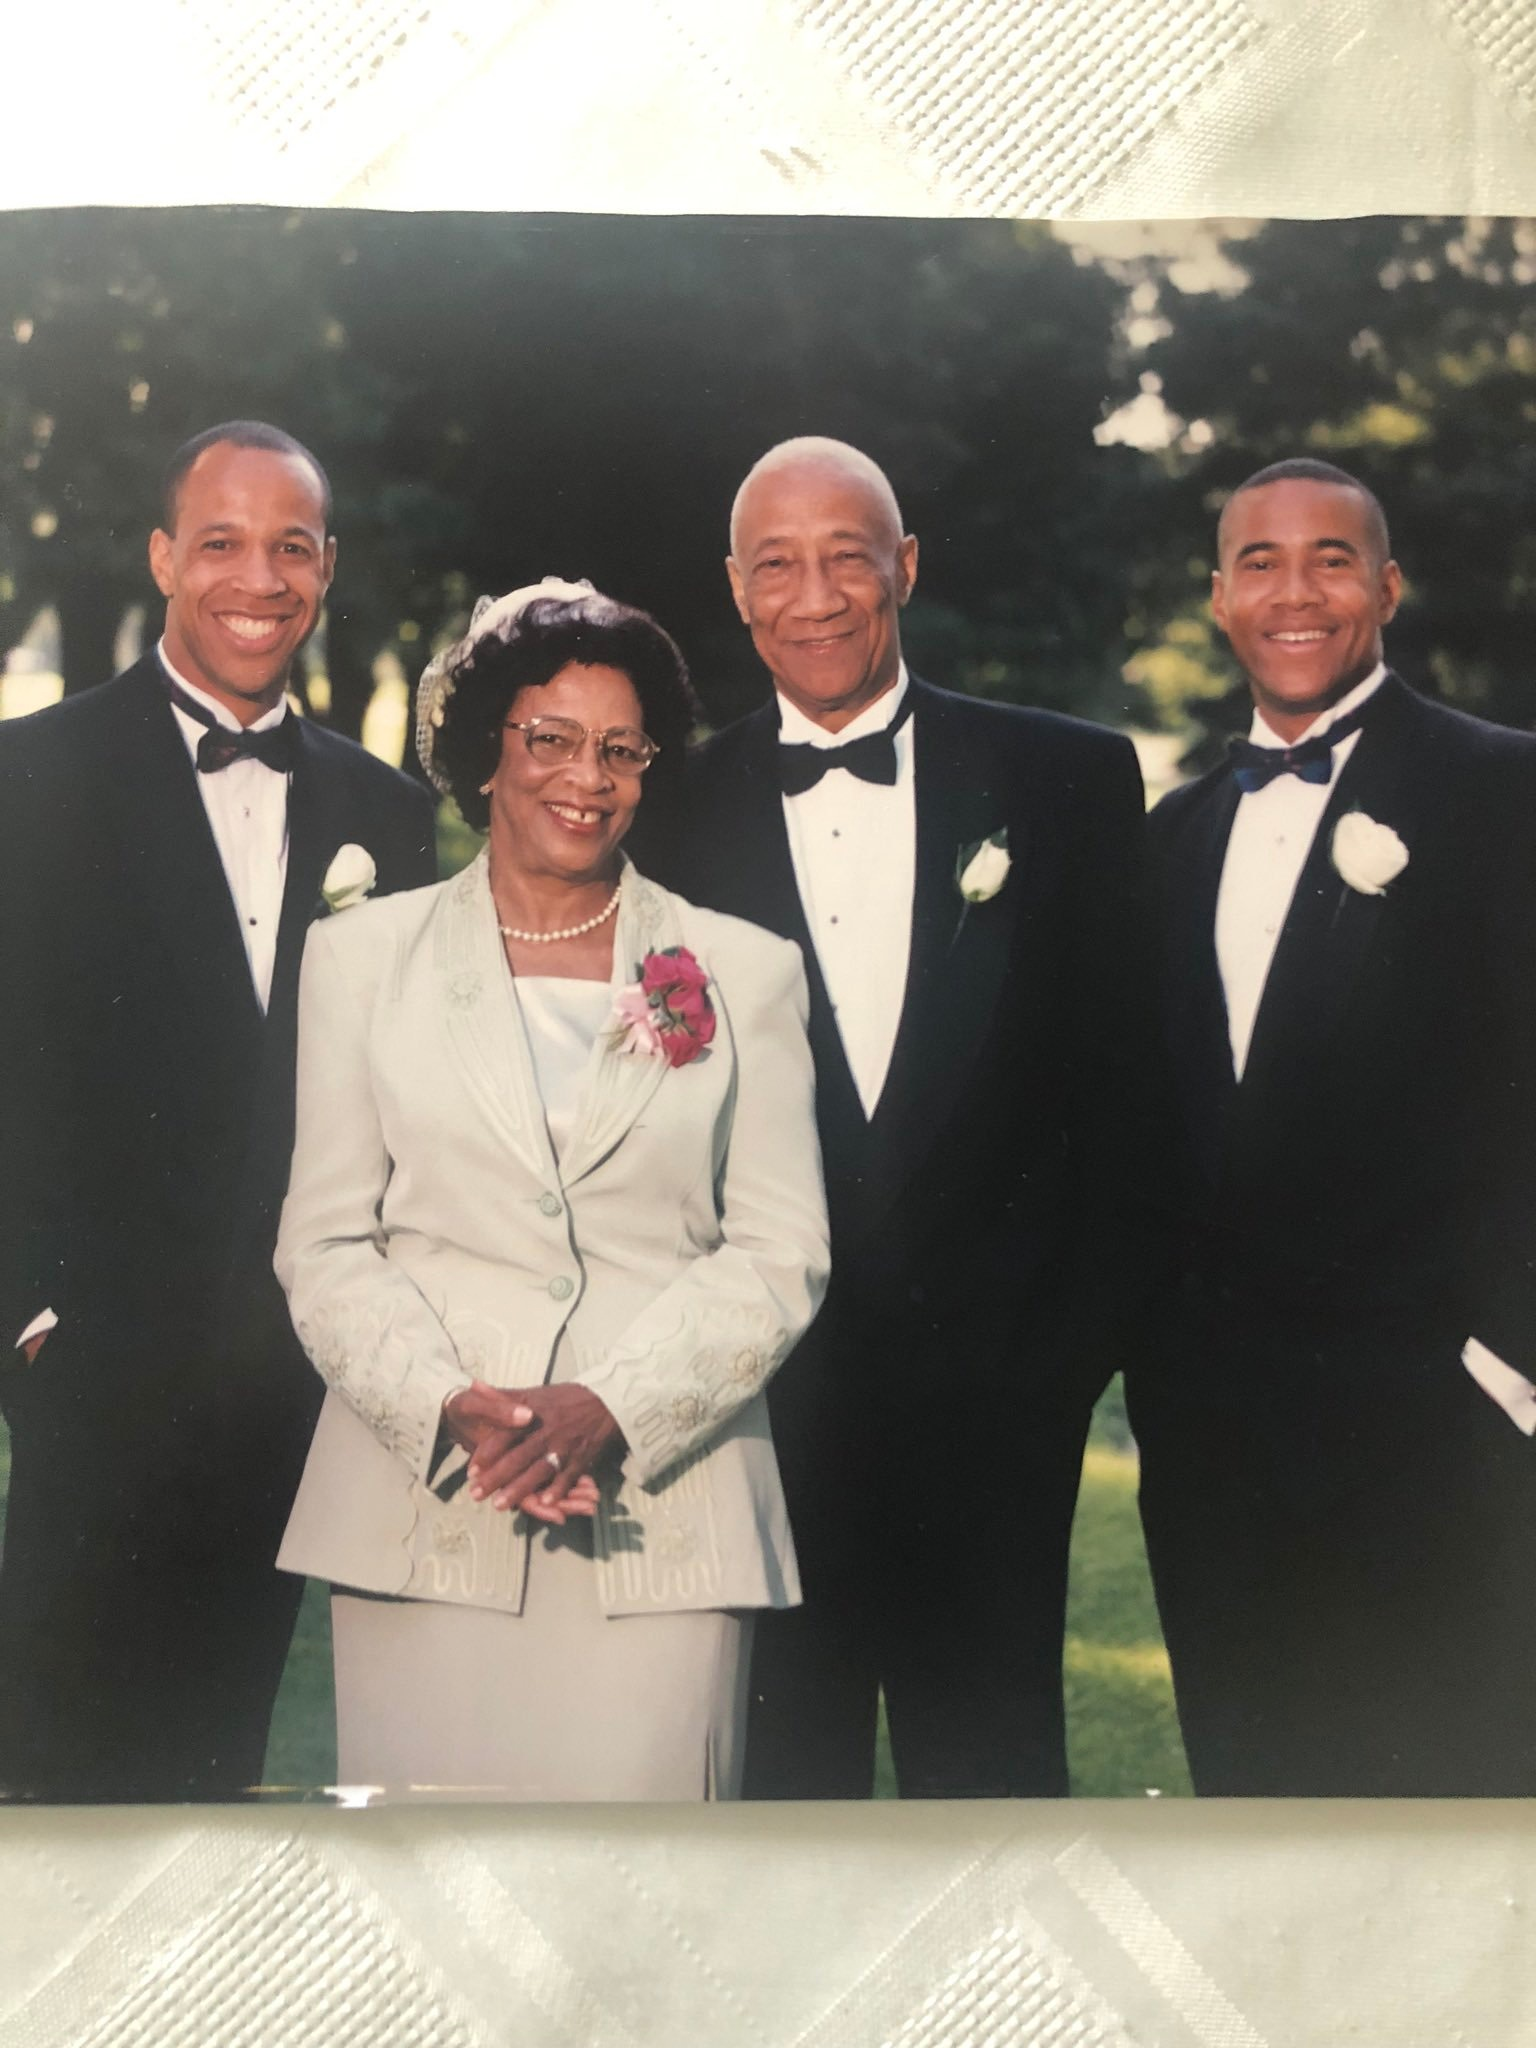 The late Hugh Jones and his wife Marjorie with sons Paul (l) & Mark